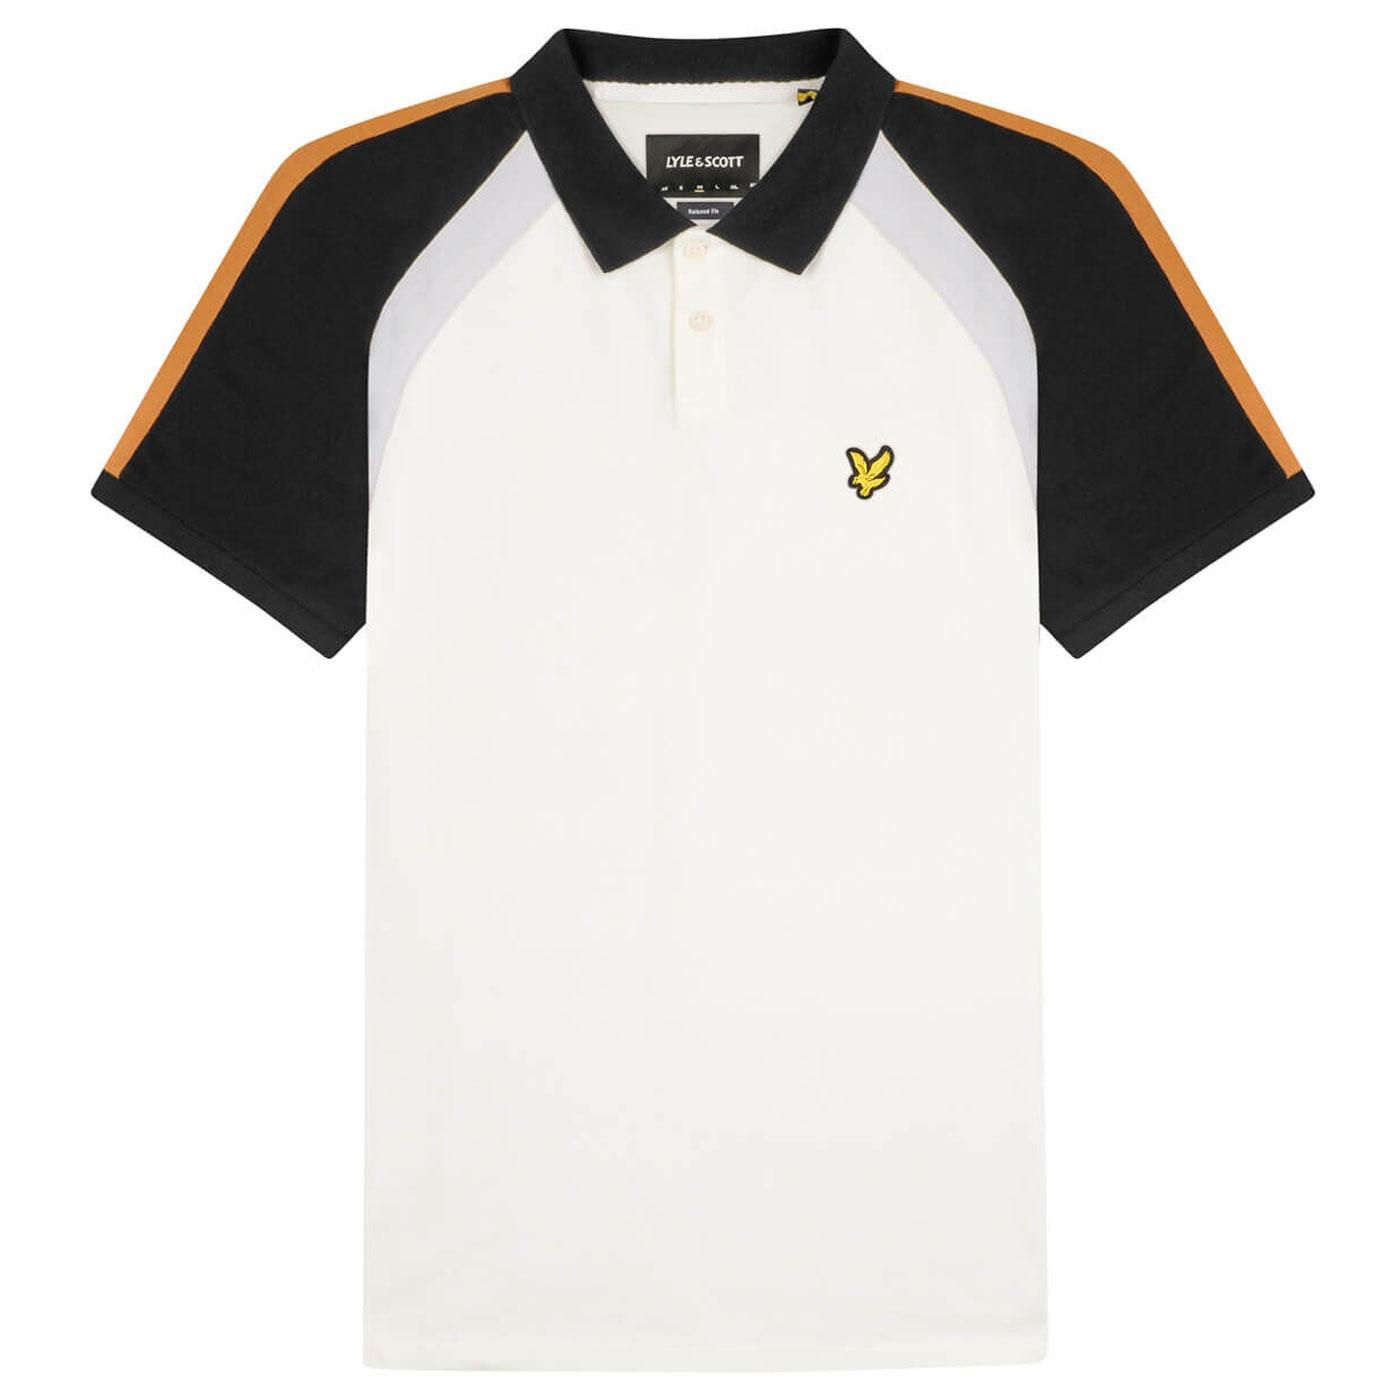 LYLE & SCOTT Men's Retro Mod 3 Panel Polo Shirt